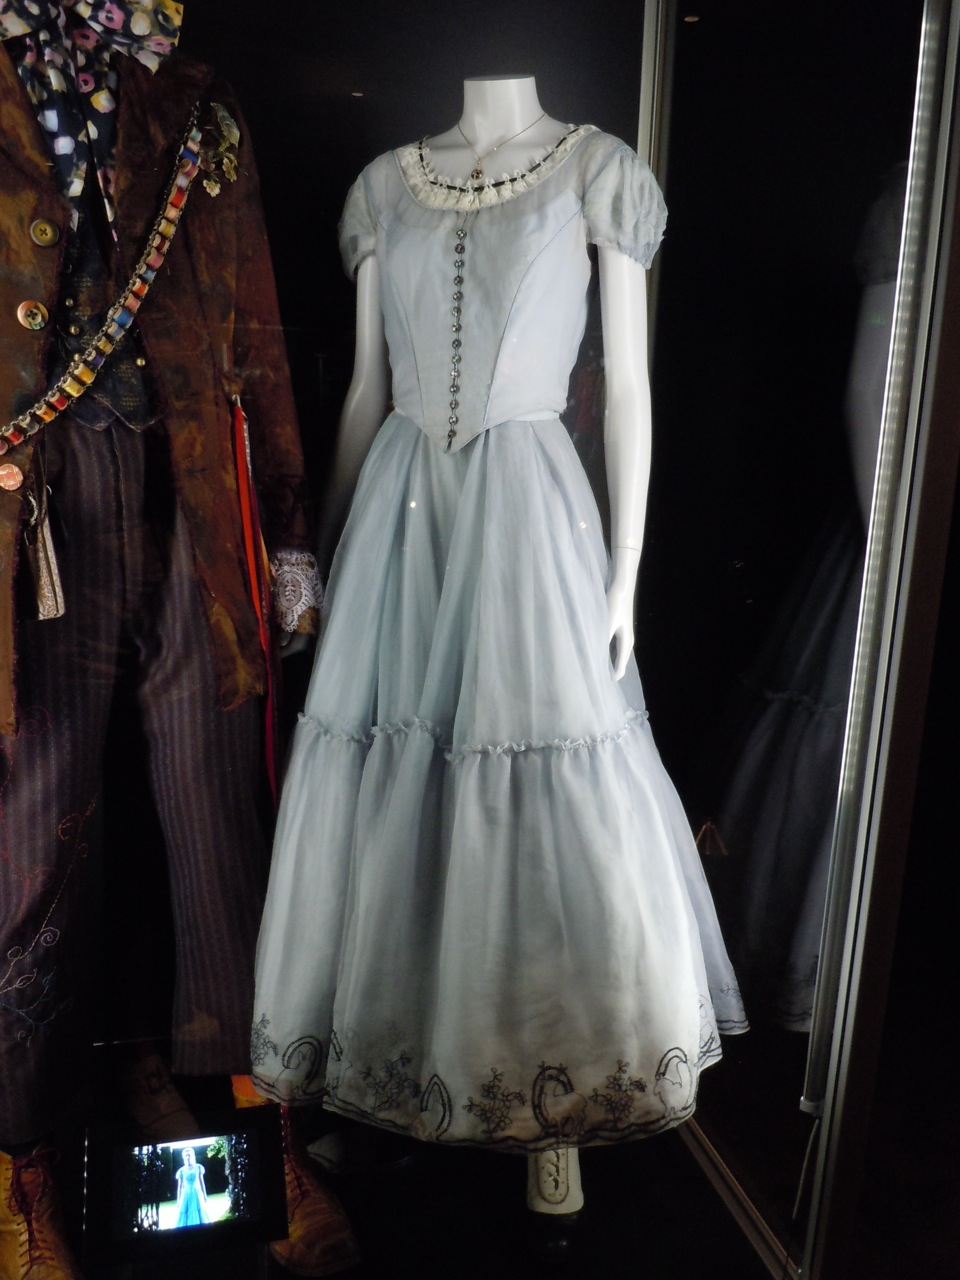 Mad Hatter And Alice In Wonderland Costumes On Display... | Hollywood Movie Costumes